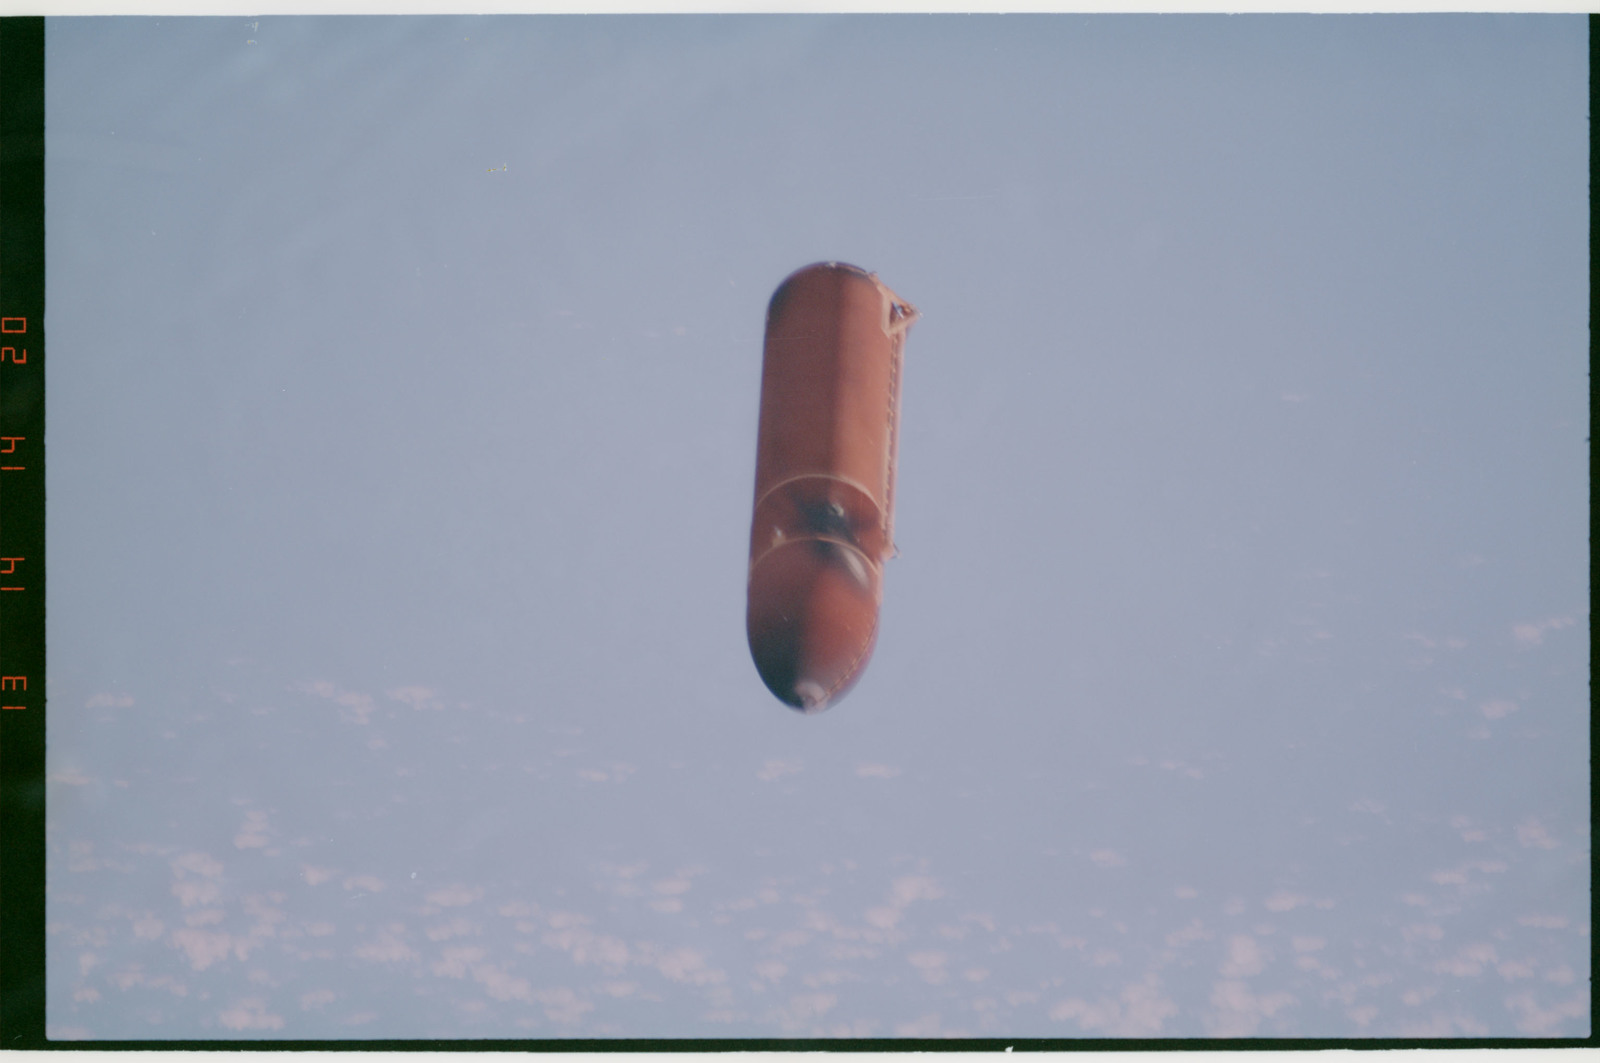 STS054-27-015 - STS-054 - Views of the jettisoned external fuel tank falling to Earth.